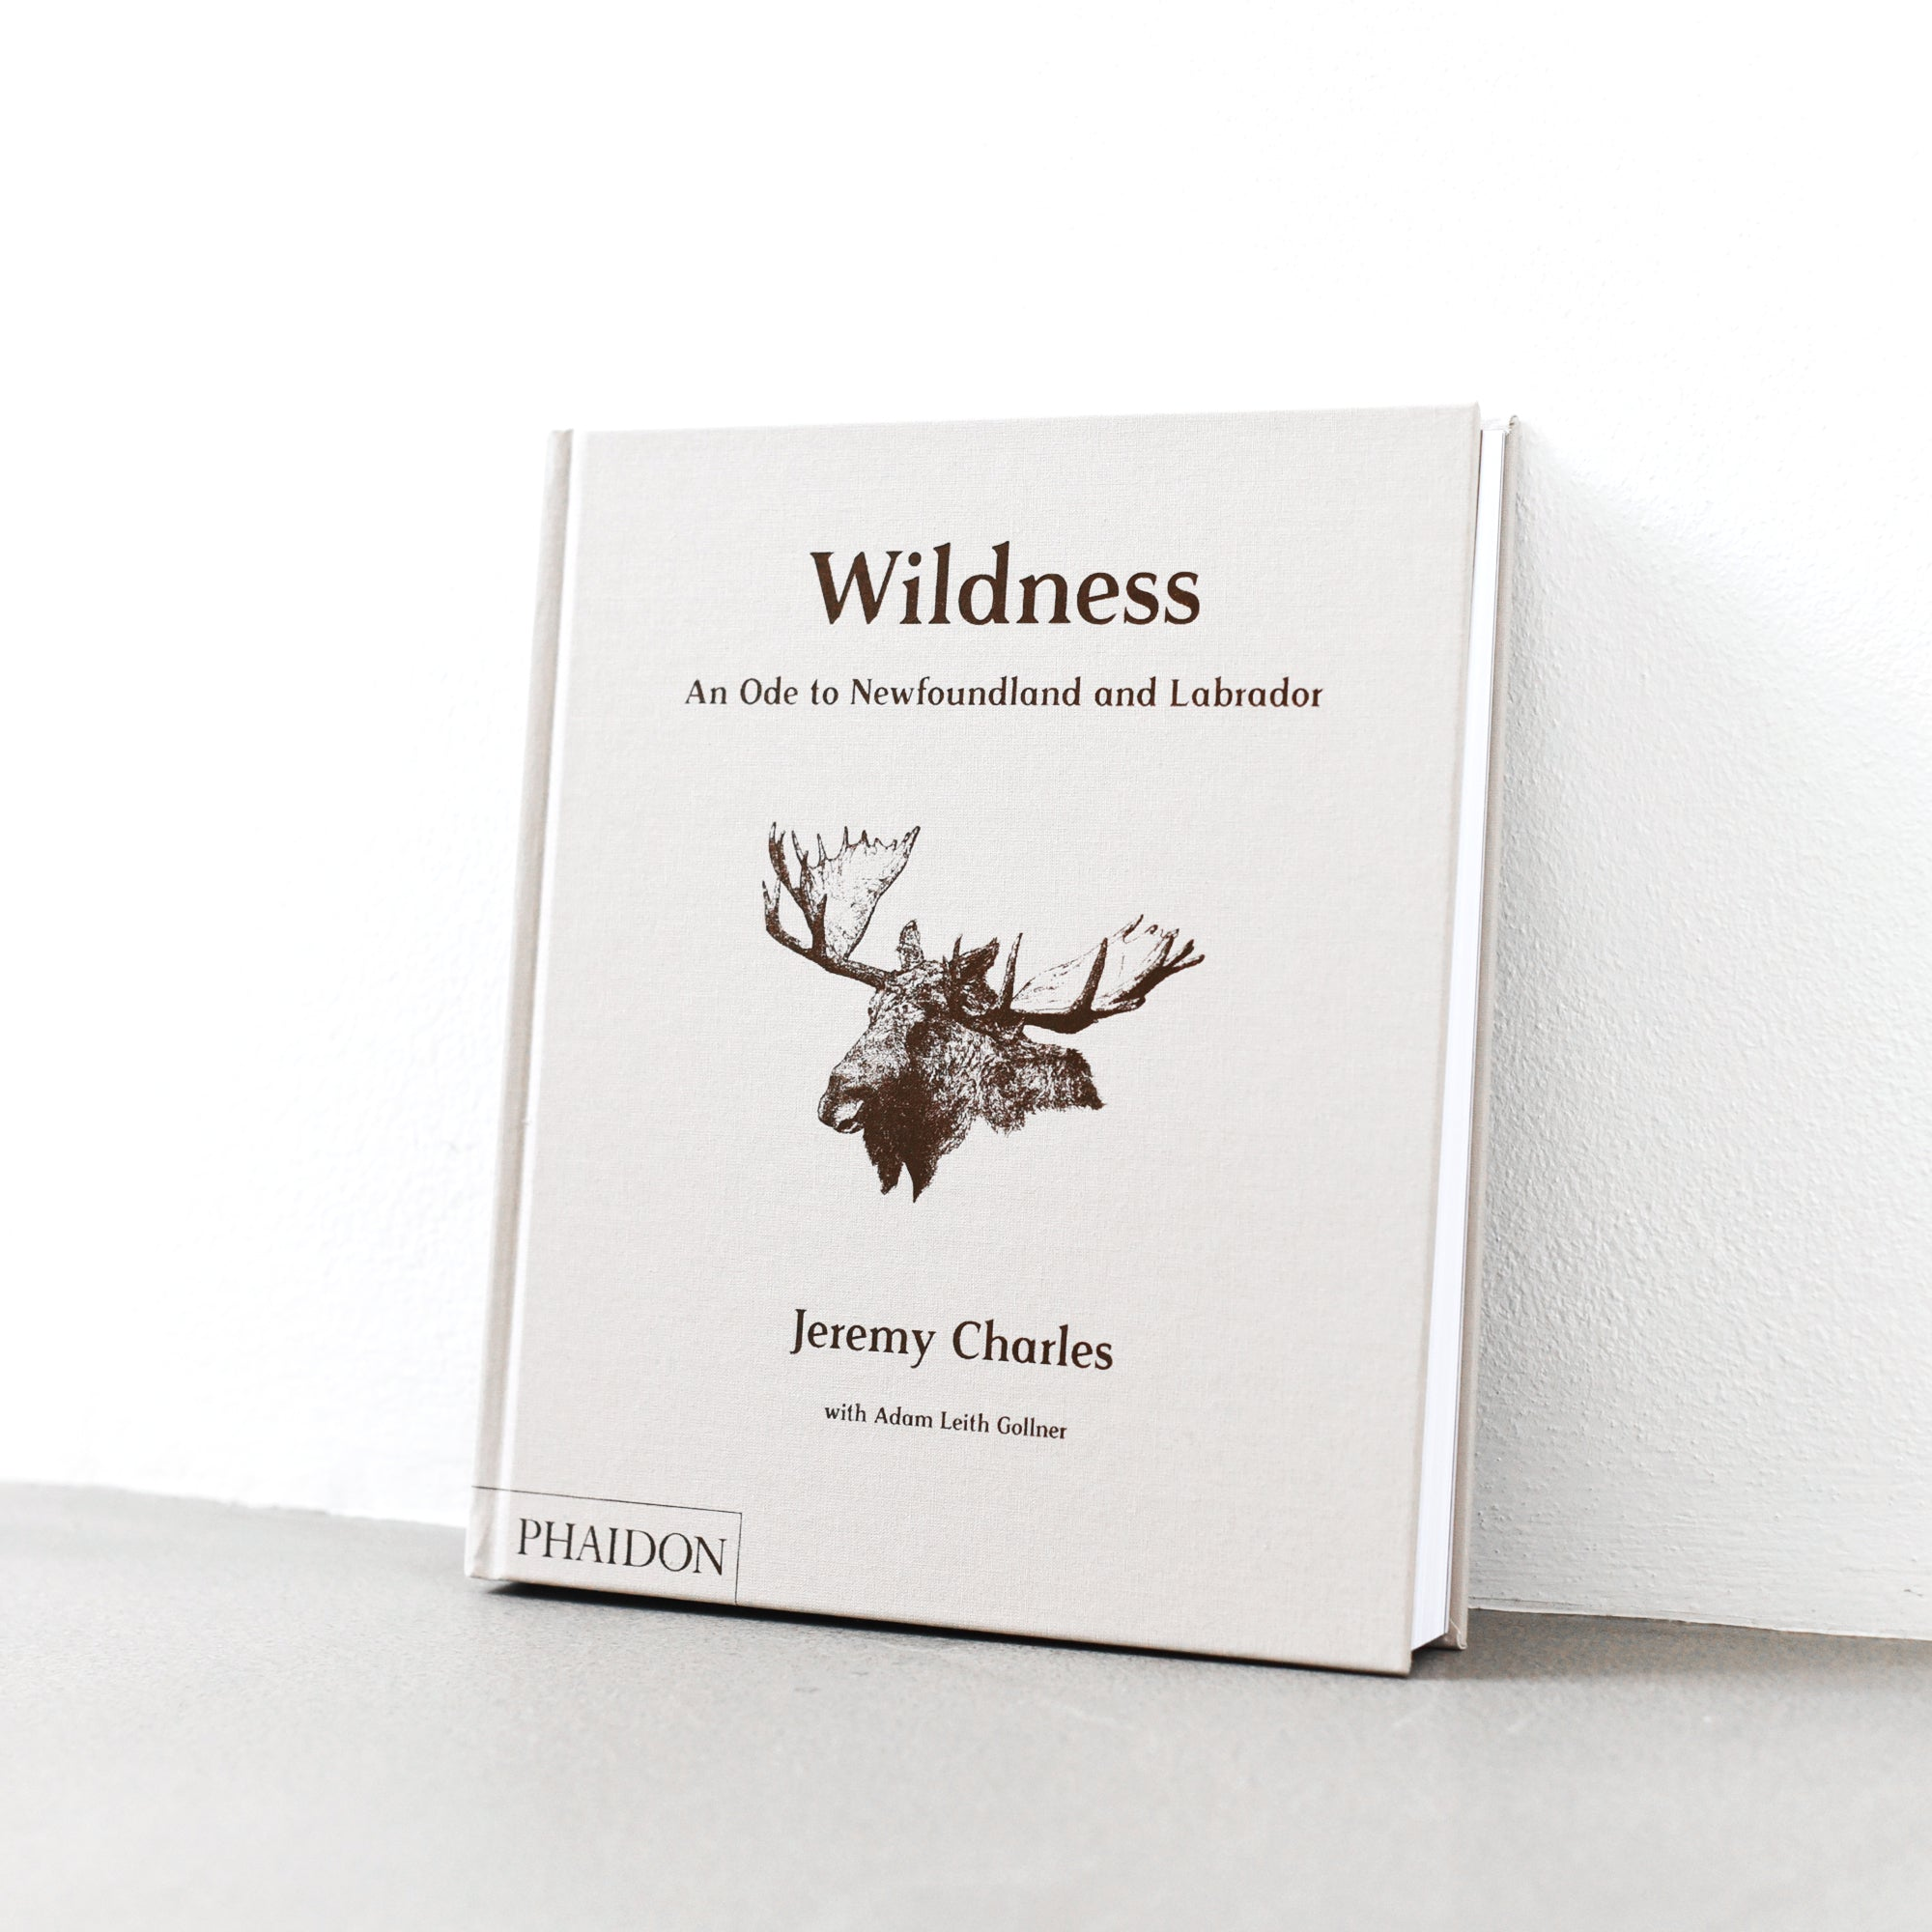 Wildness: An Ode to Newfoundland and Labrador - Jeremy Charles